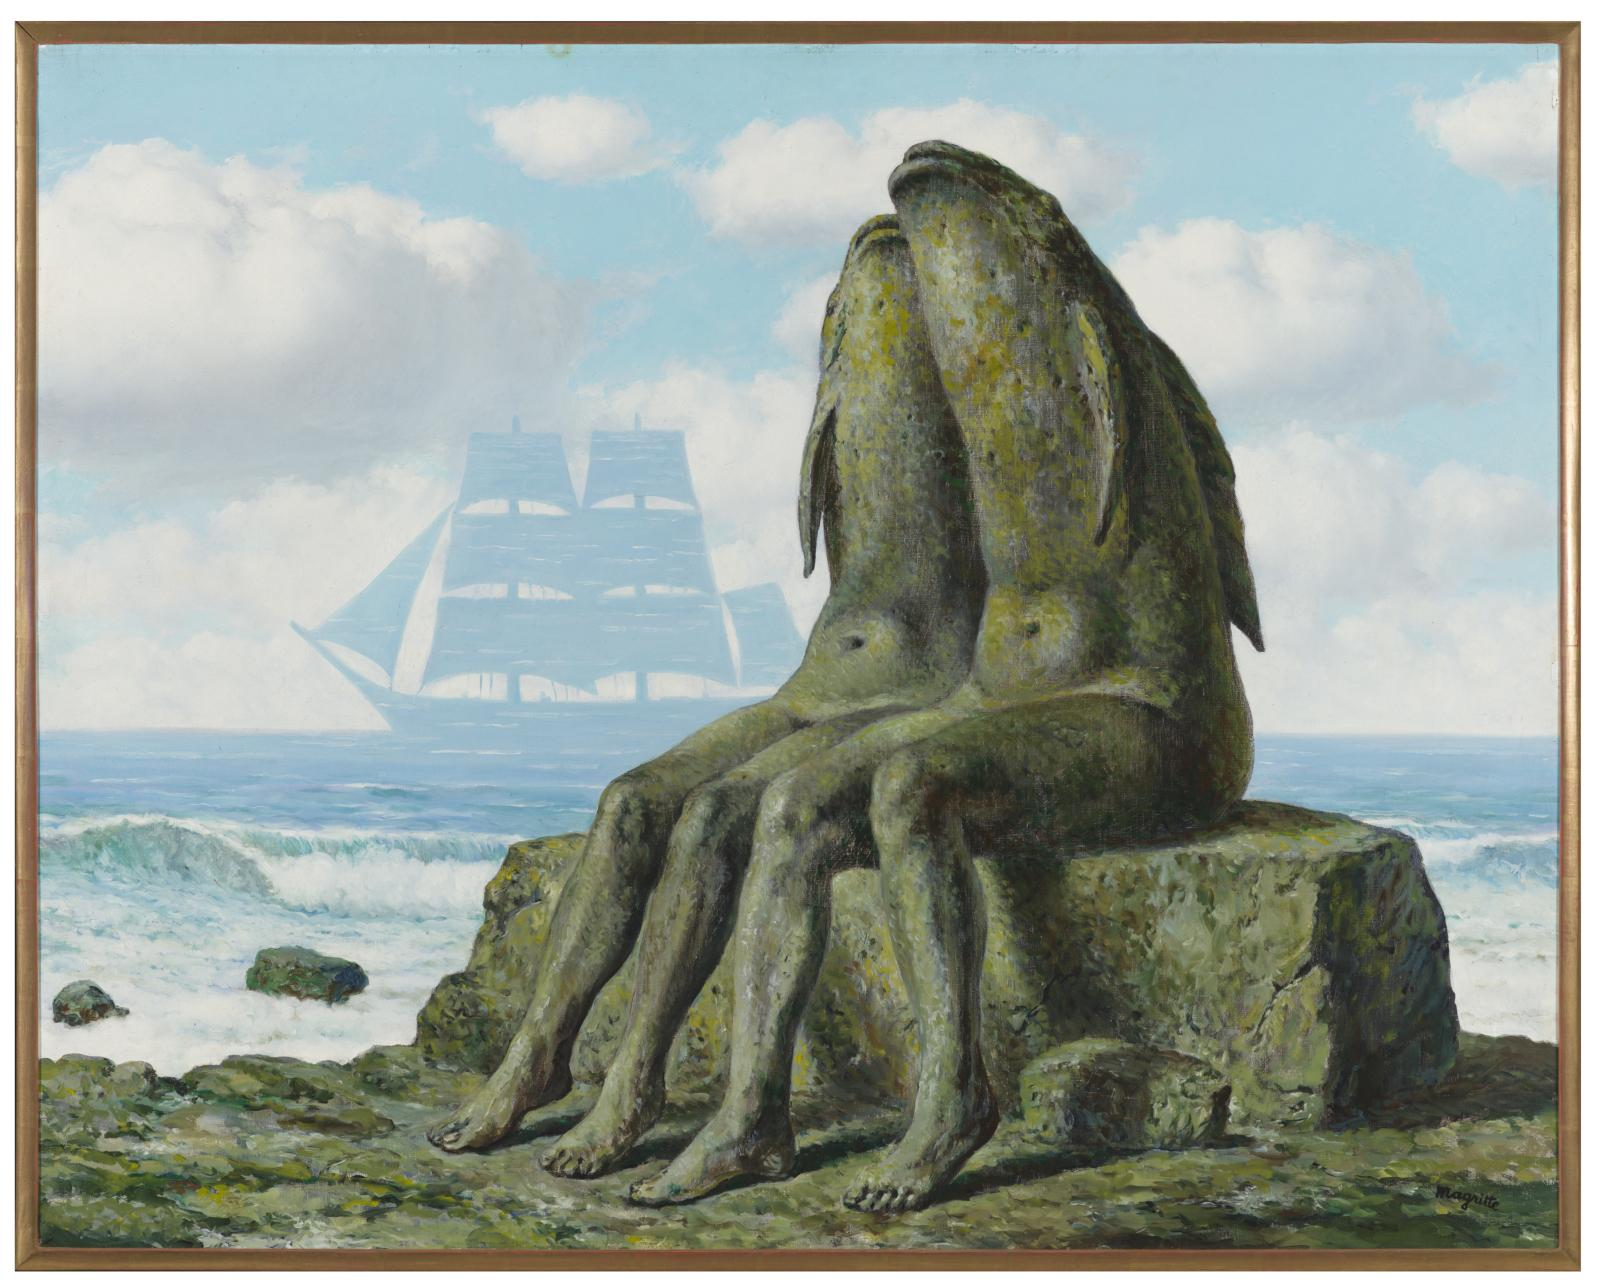 Two mossy stone figures with human legs and fish torsos sit leaning against each other on a mossy stone by the seashore. On the horizon the shape of a double-masted sailing vessel made out of water rises out of the sea and cuts into the blue, cloud-filled sky.